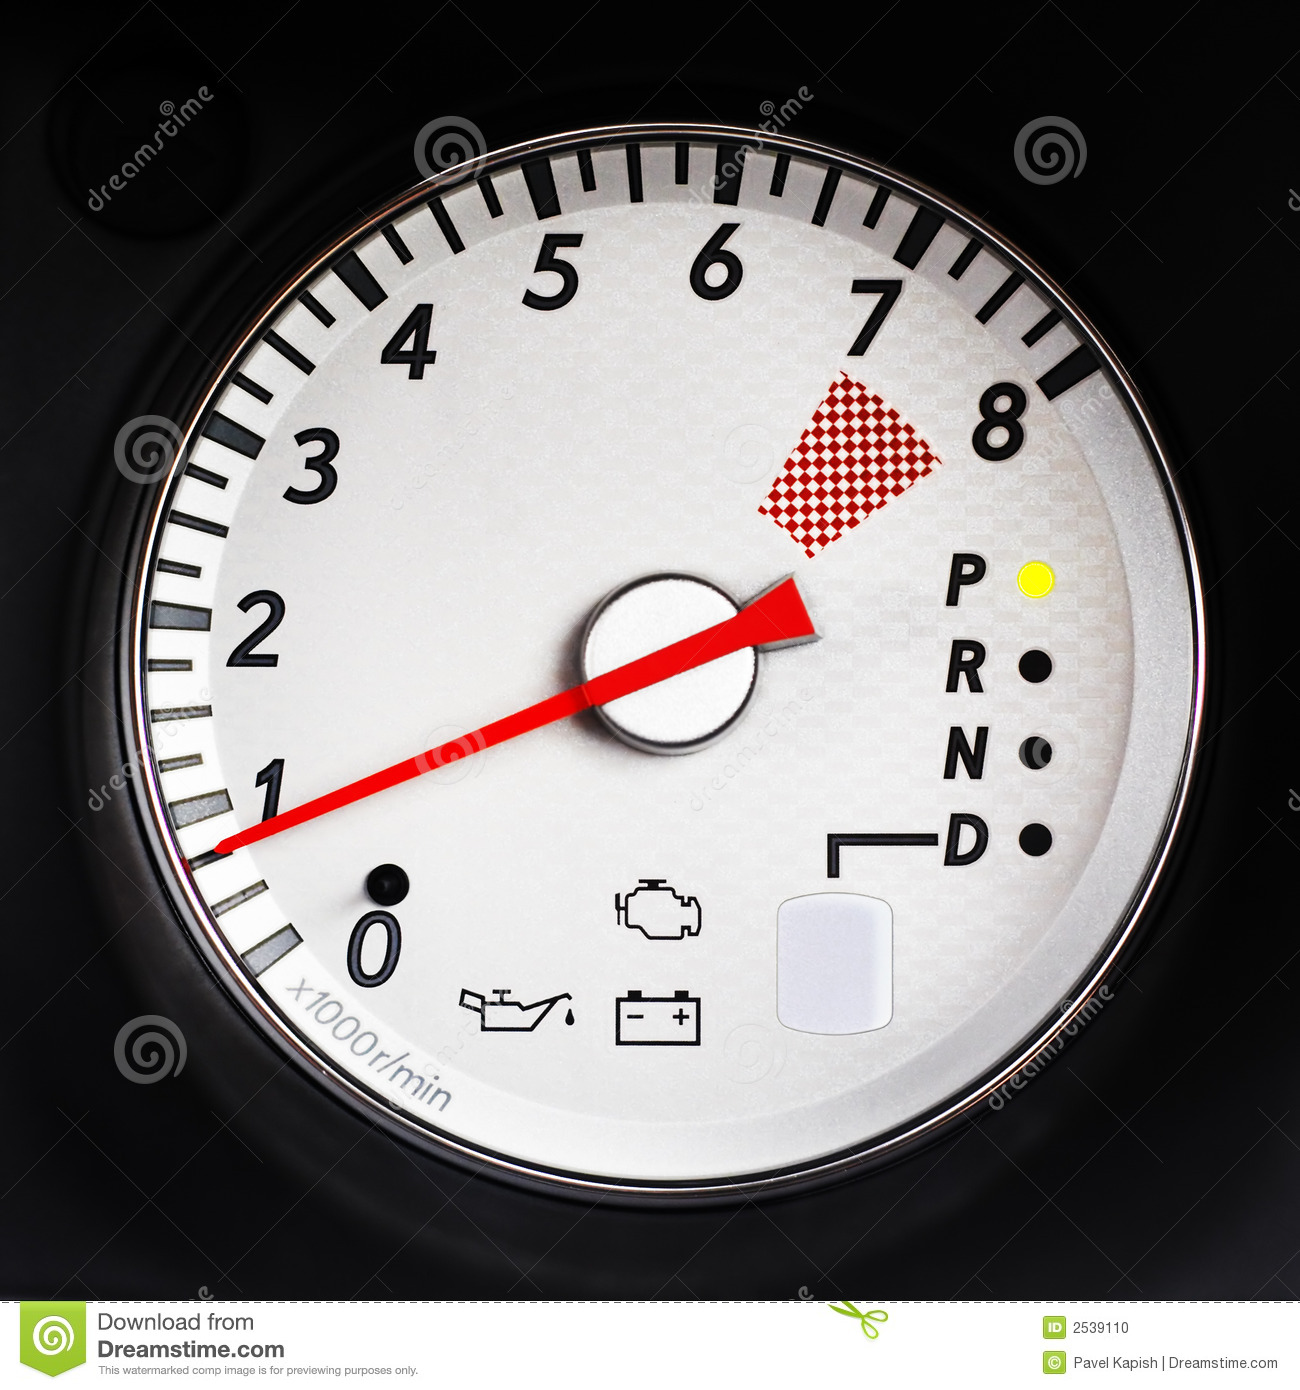 Sport Car Tachometer Stock Photo  Image Of Competition